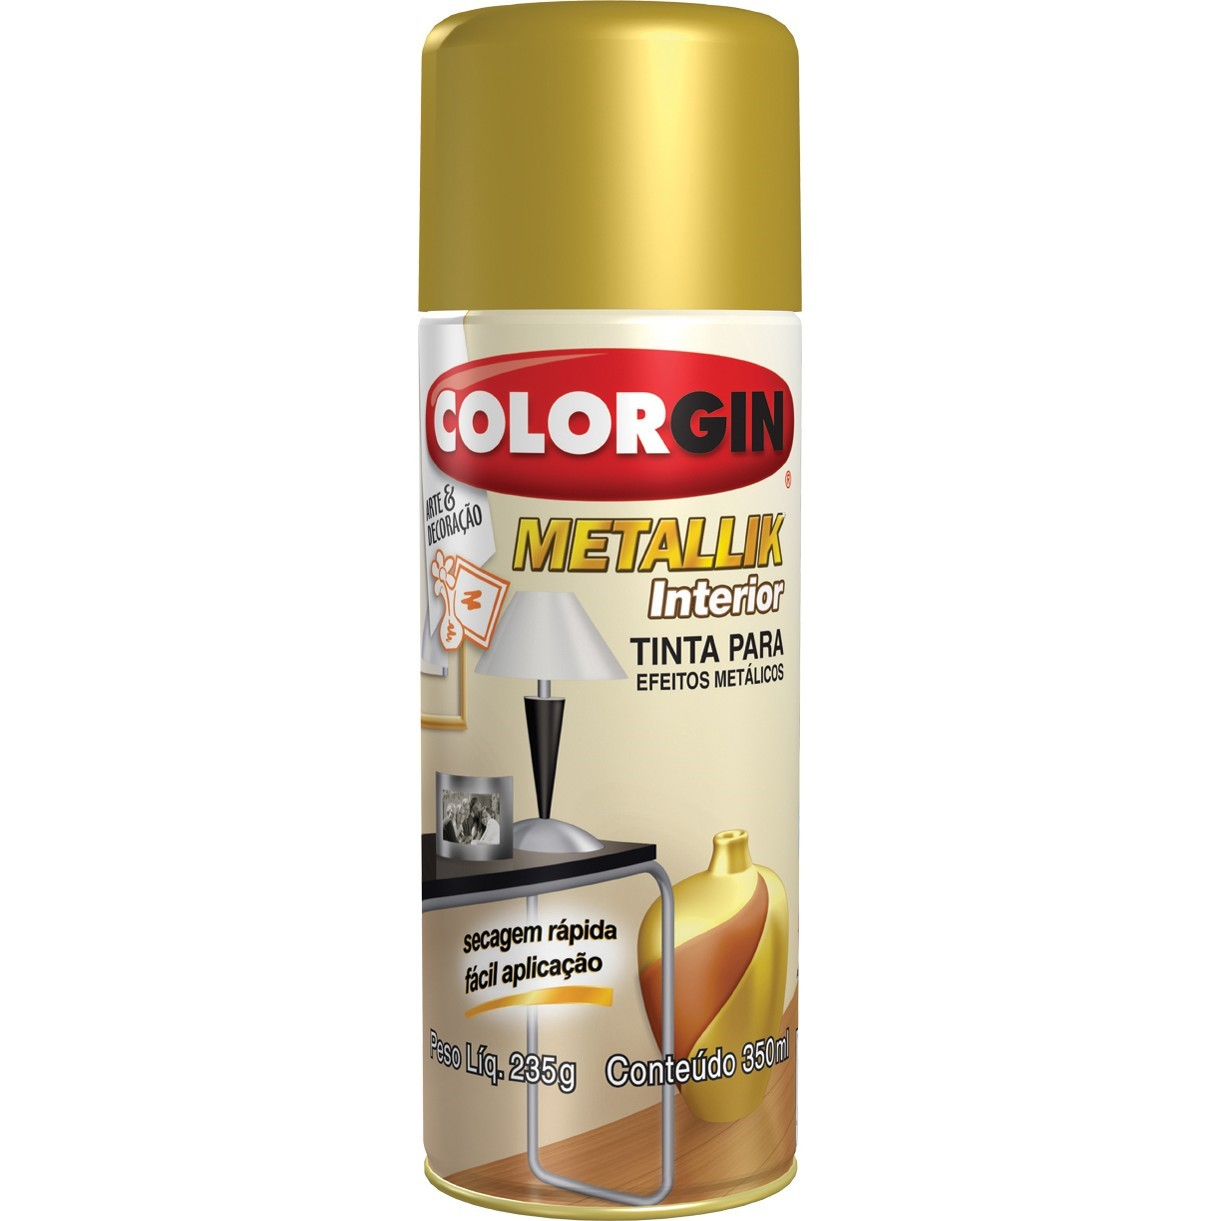 Tinta Spray Metalico Metallik Interno - Dourado - 350ml - Colorgin